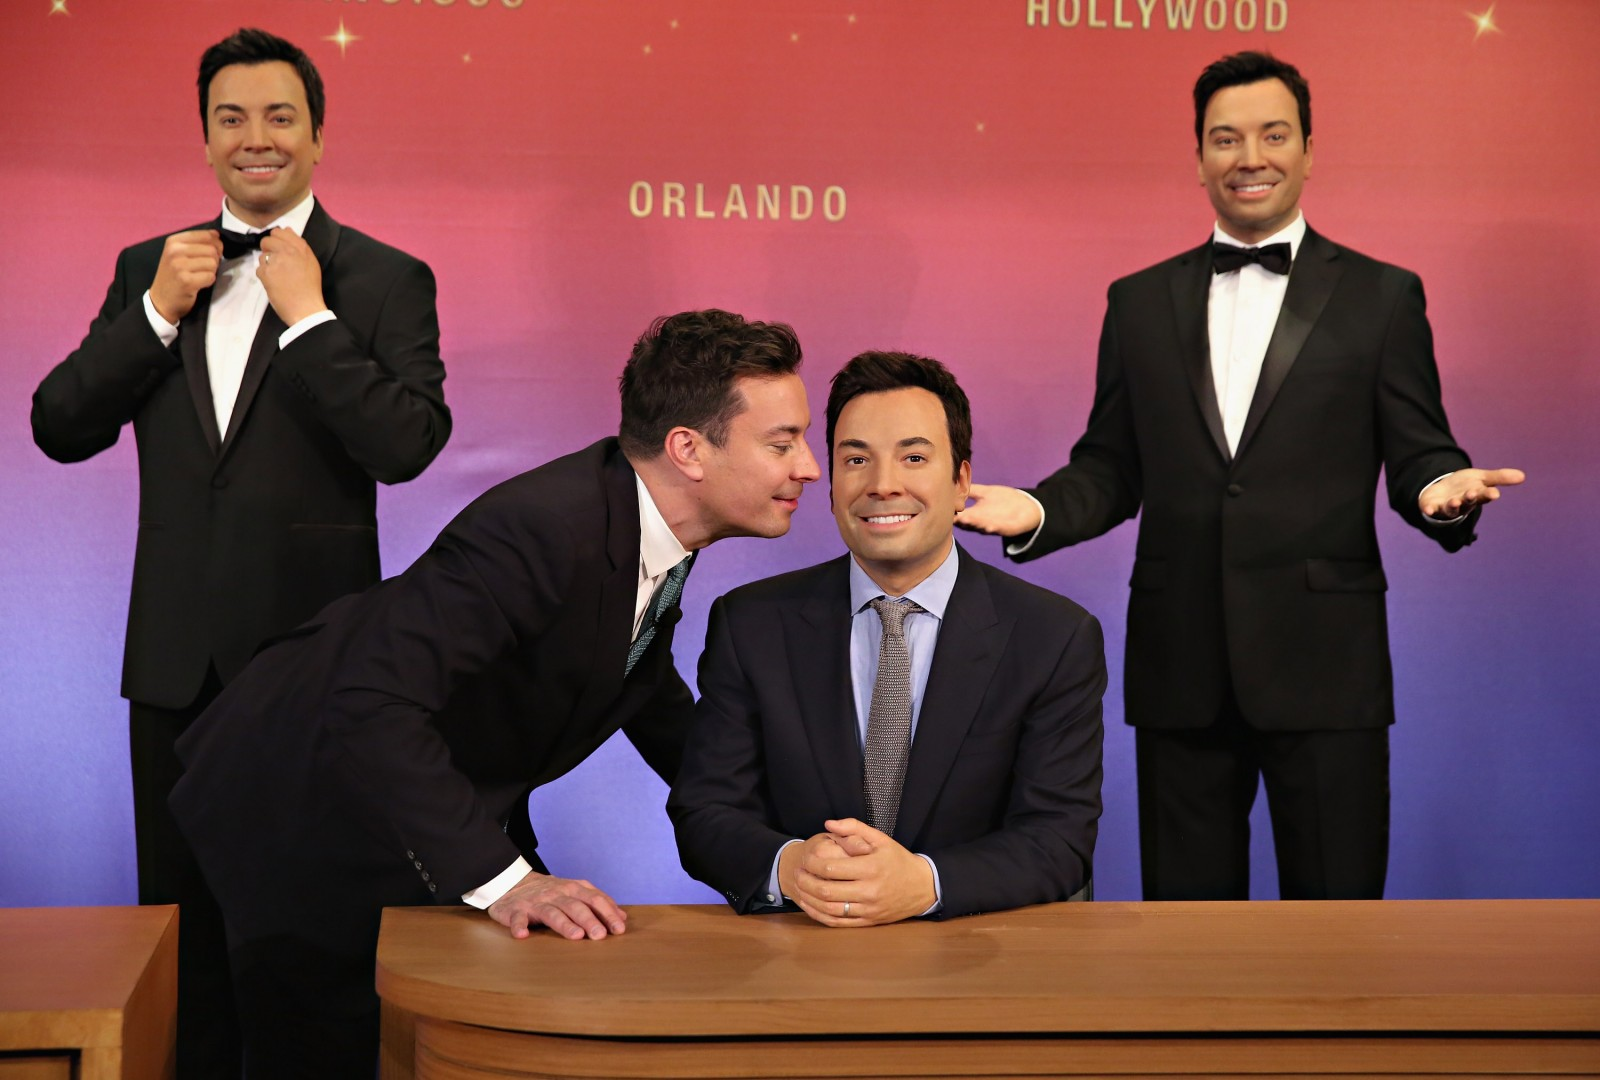 Madame Tussuads And Jimmy Fallon Debut Five Wax Figures At Madame Tussauds New York Madame Tussuads Orlando